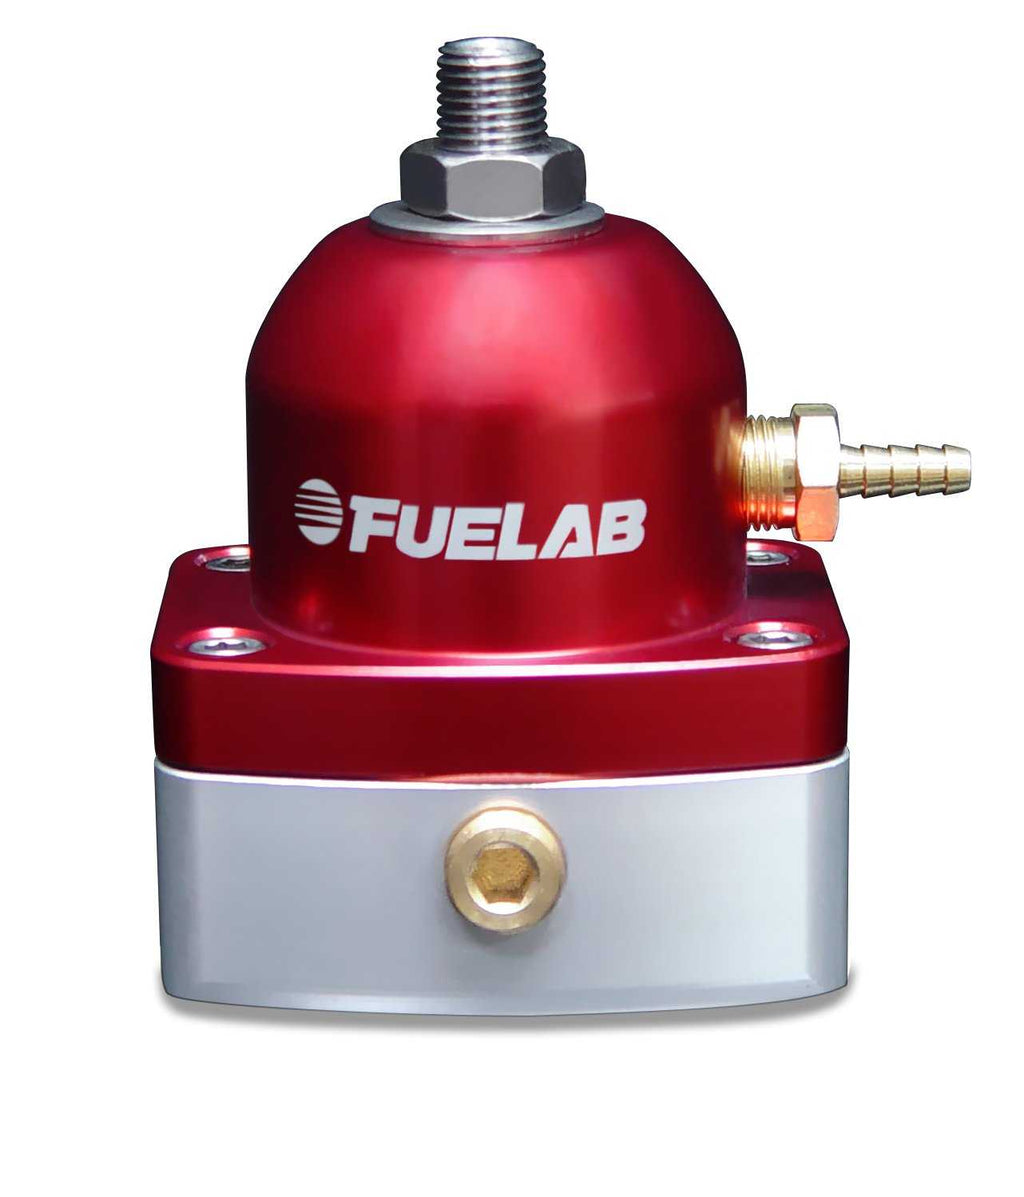 FUELAB 515 Series fuel pressure regulators - SIMPLETECHNIQES  PERFORMANCE